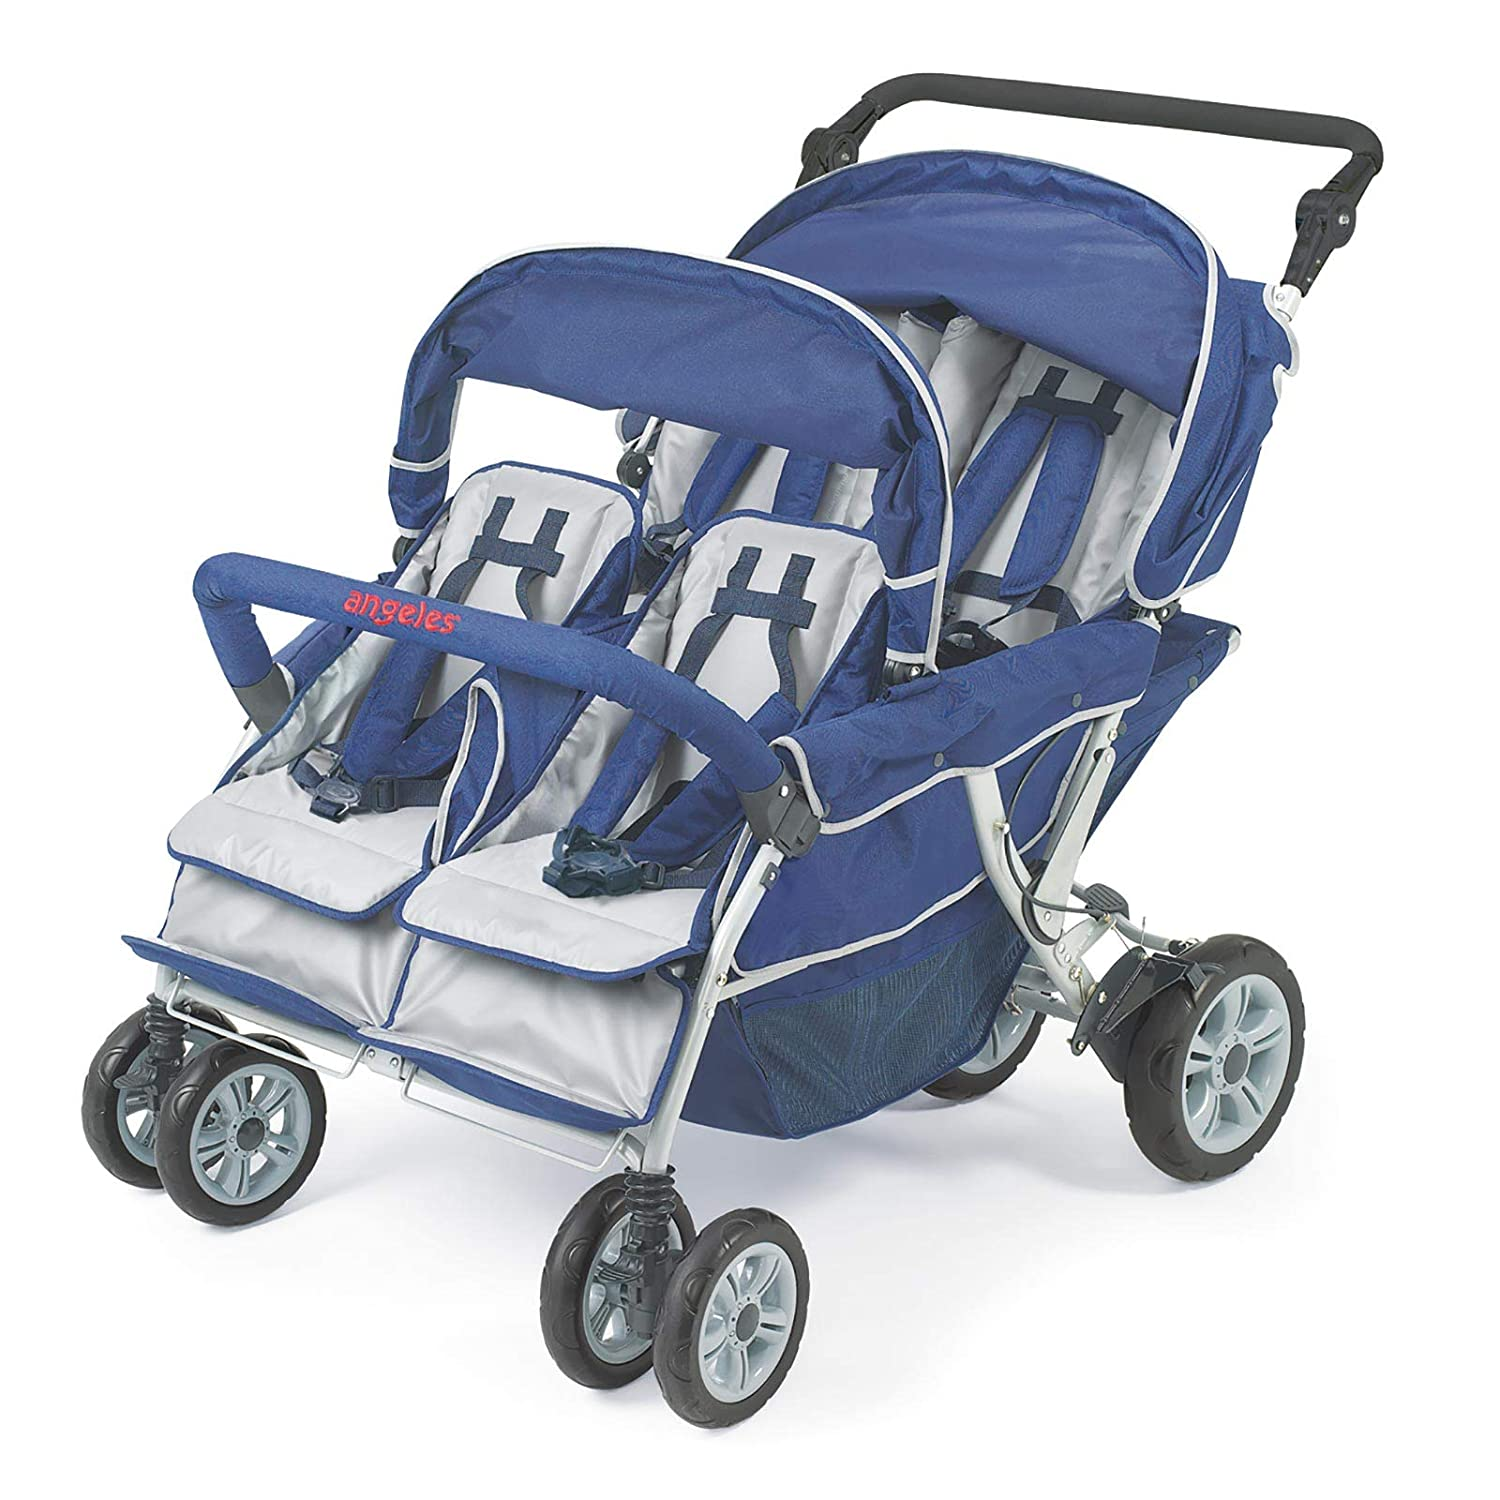 Children s Factory Surestop Folding Commercial Bye-Bye Stroller, 4 Passenger